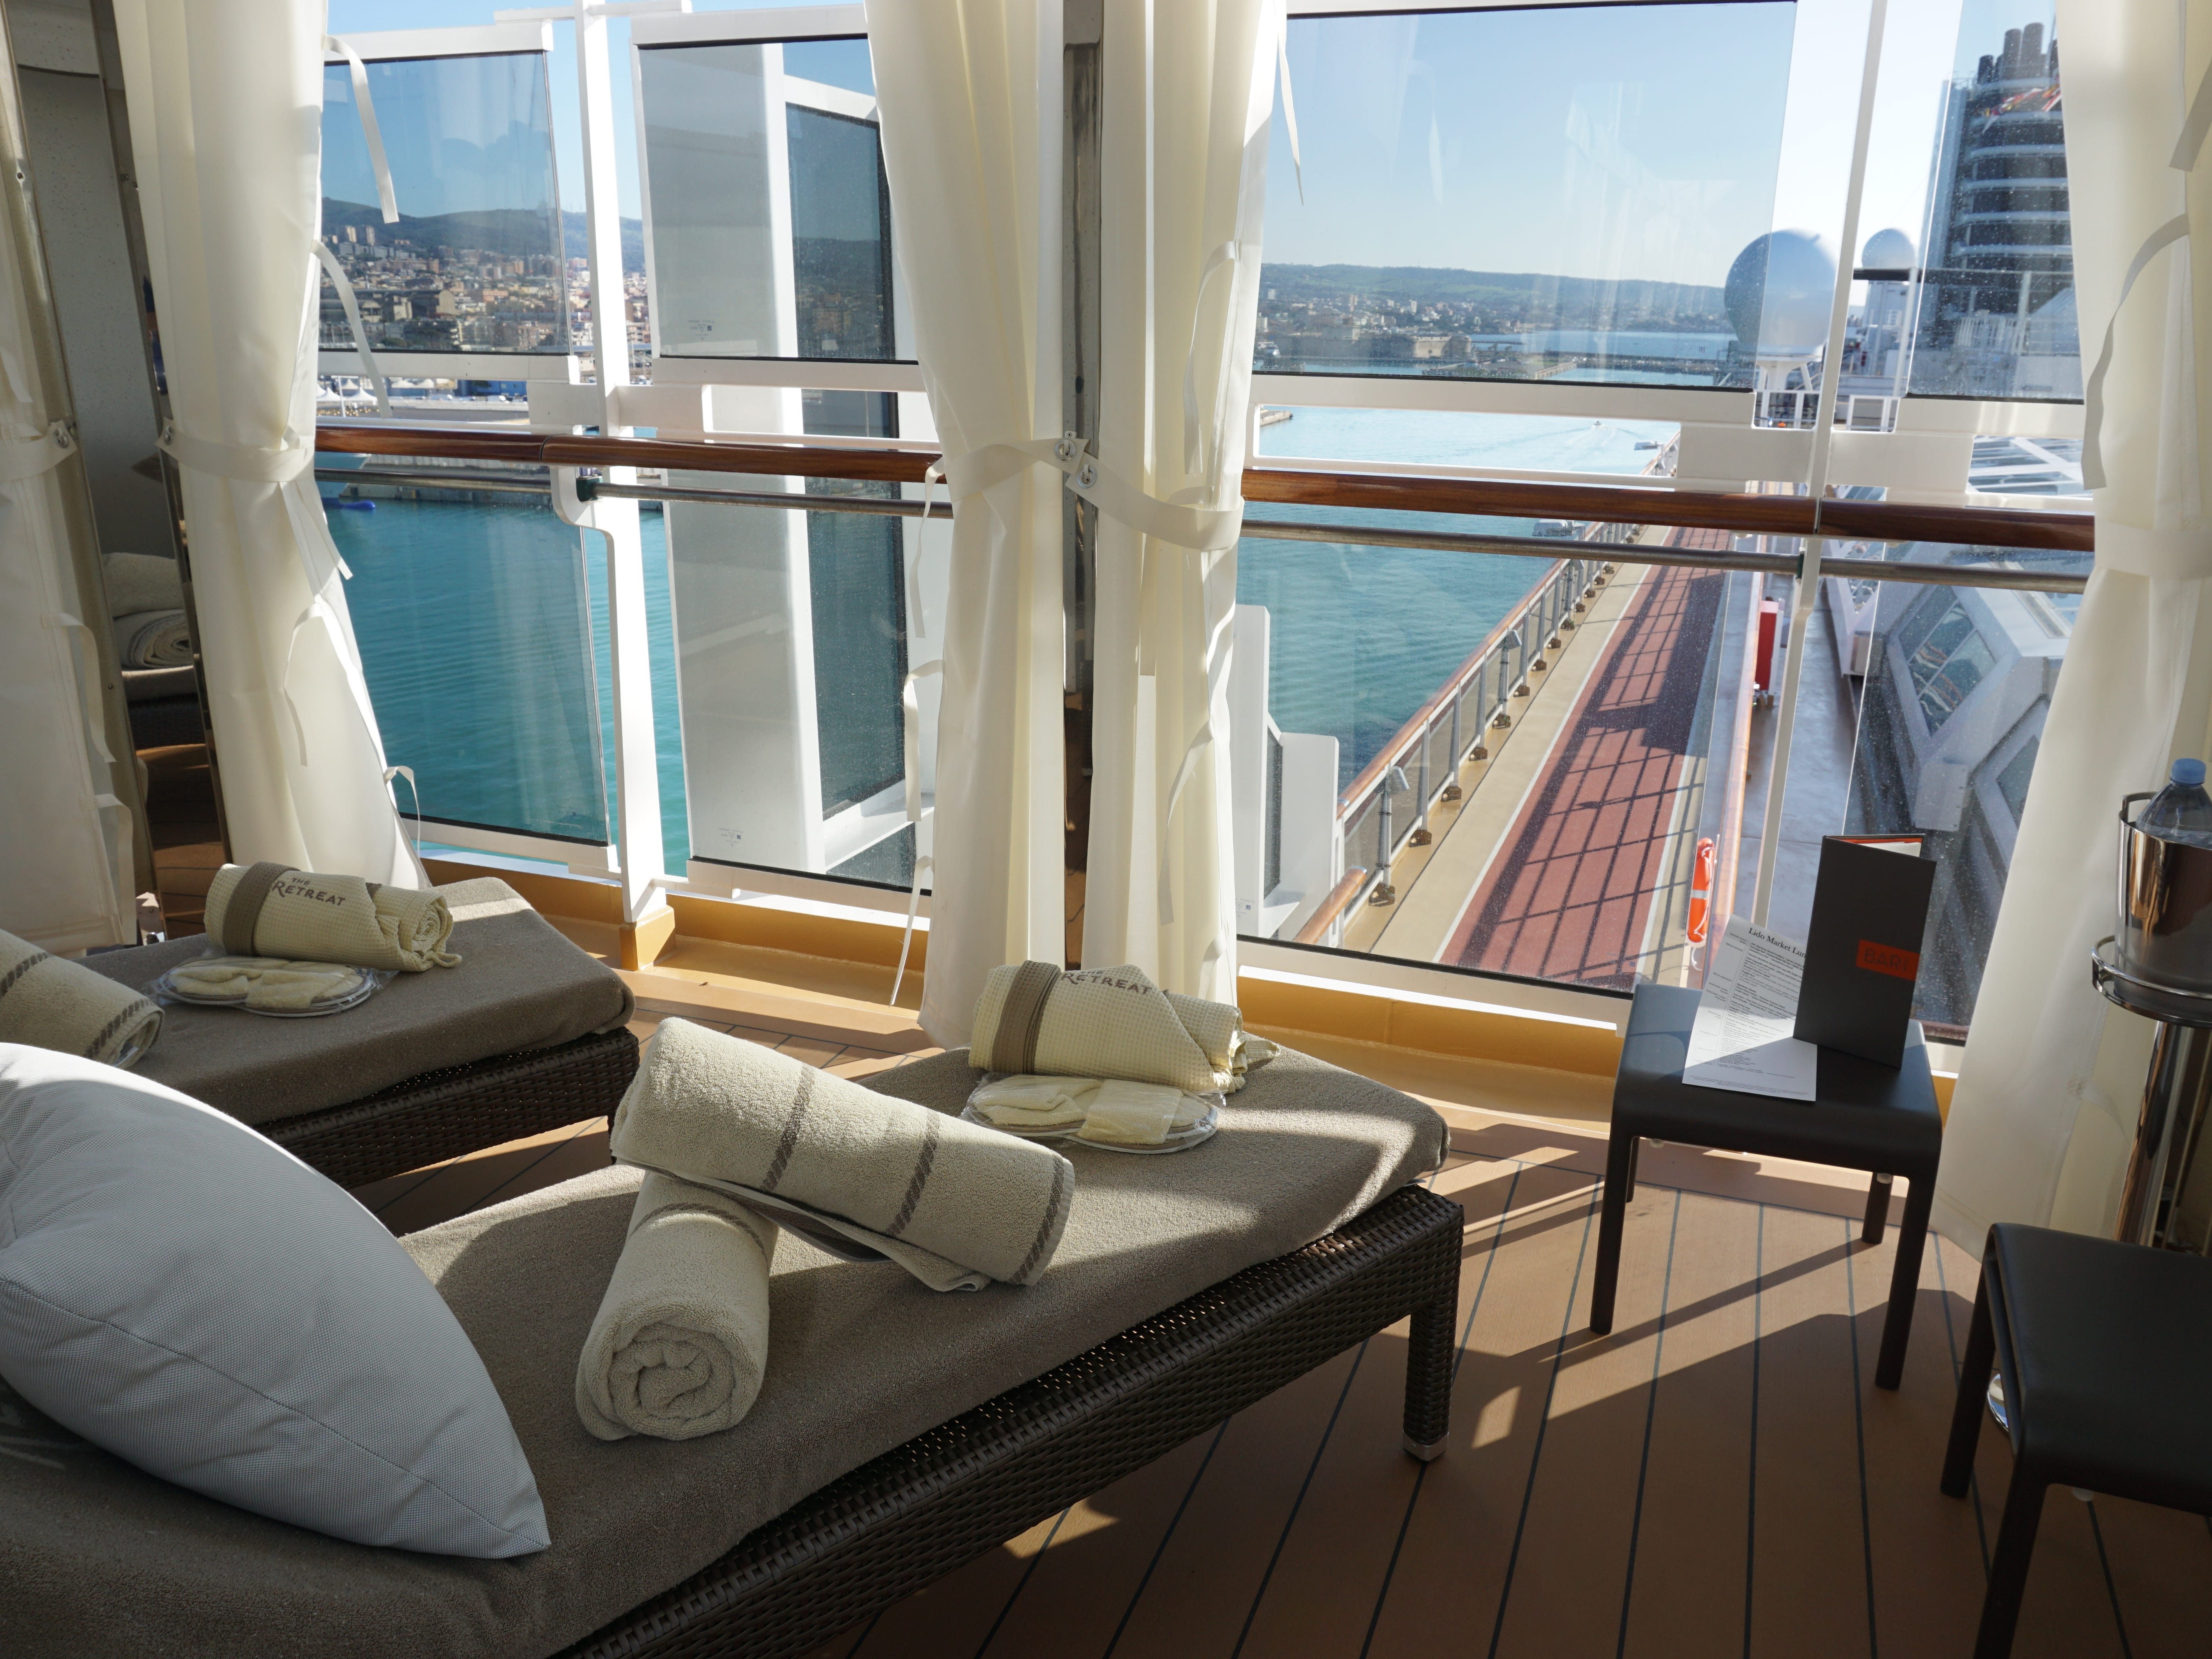 This is one of the larger corner cabanas offering views over the sea and the midships pool.